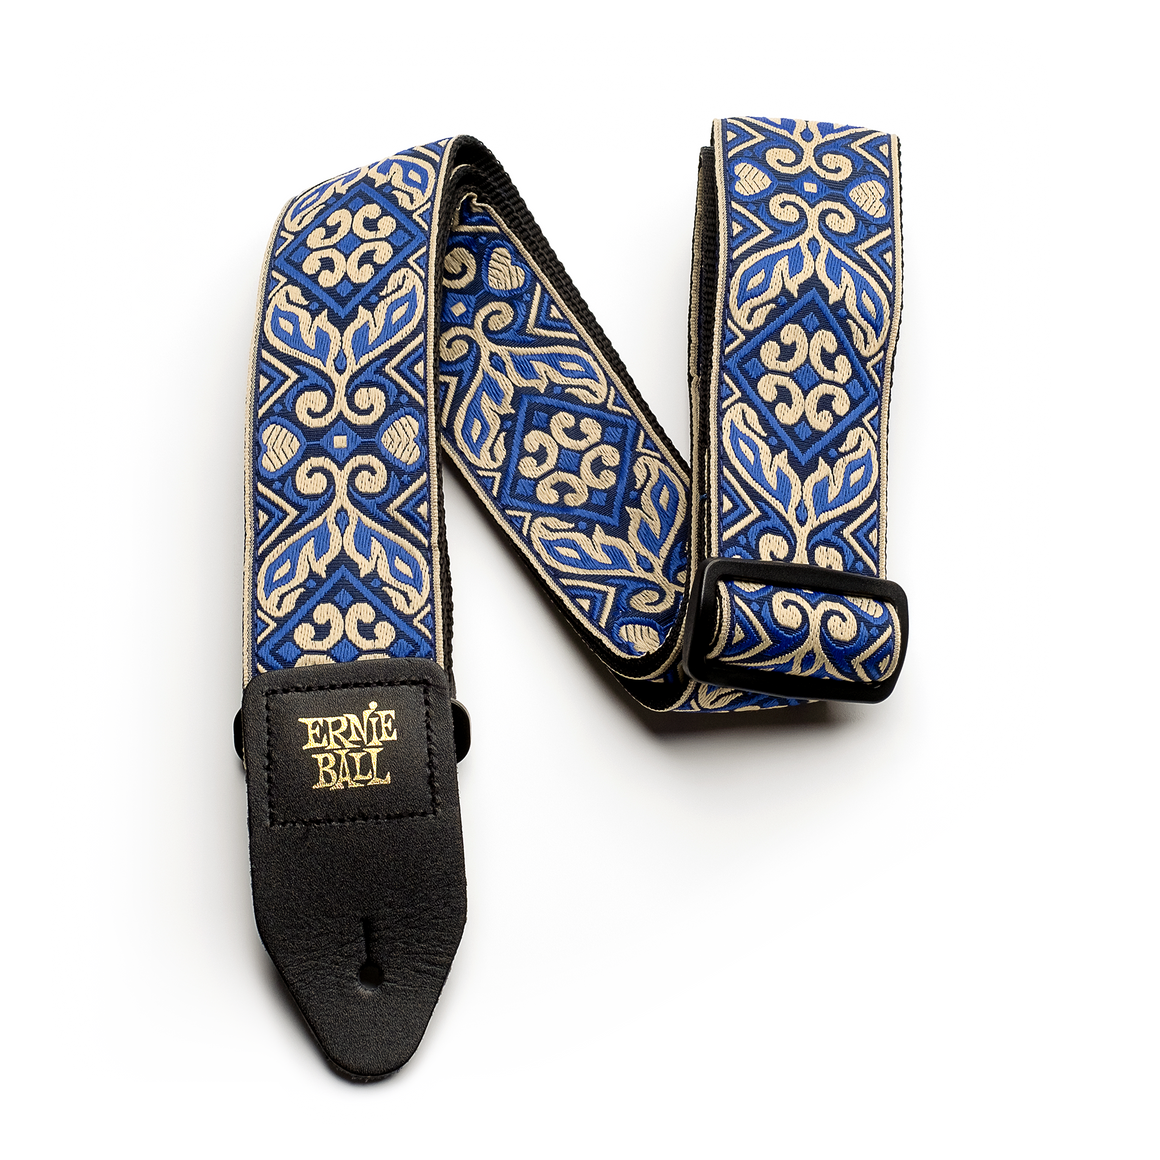 Ernie Ball 4165 Tribal Blue Jacquard Strap